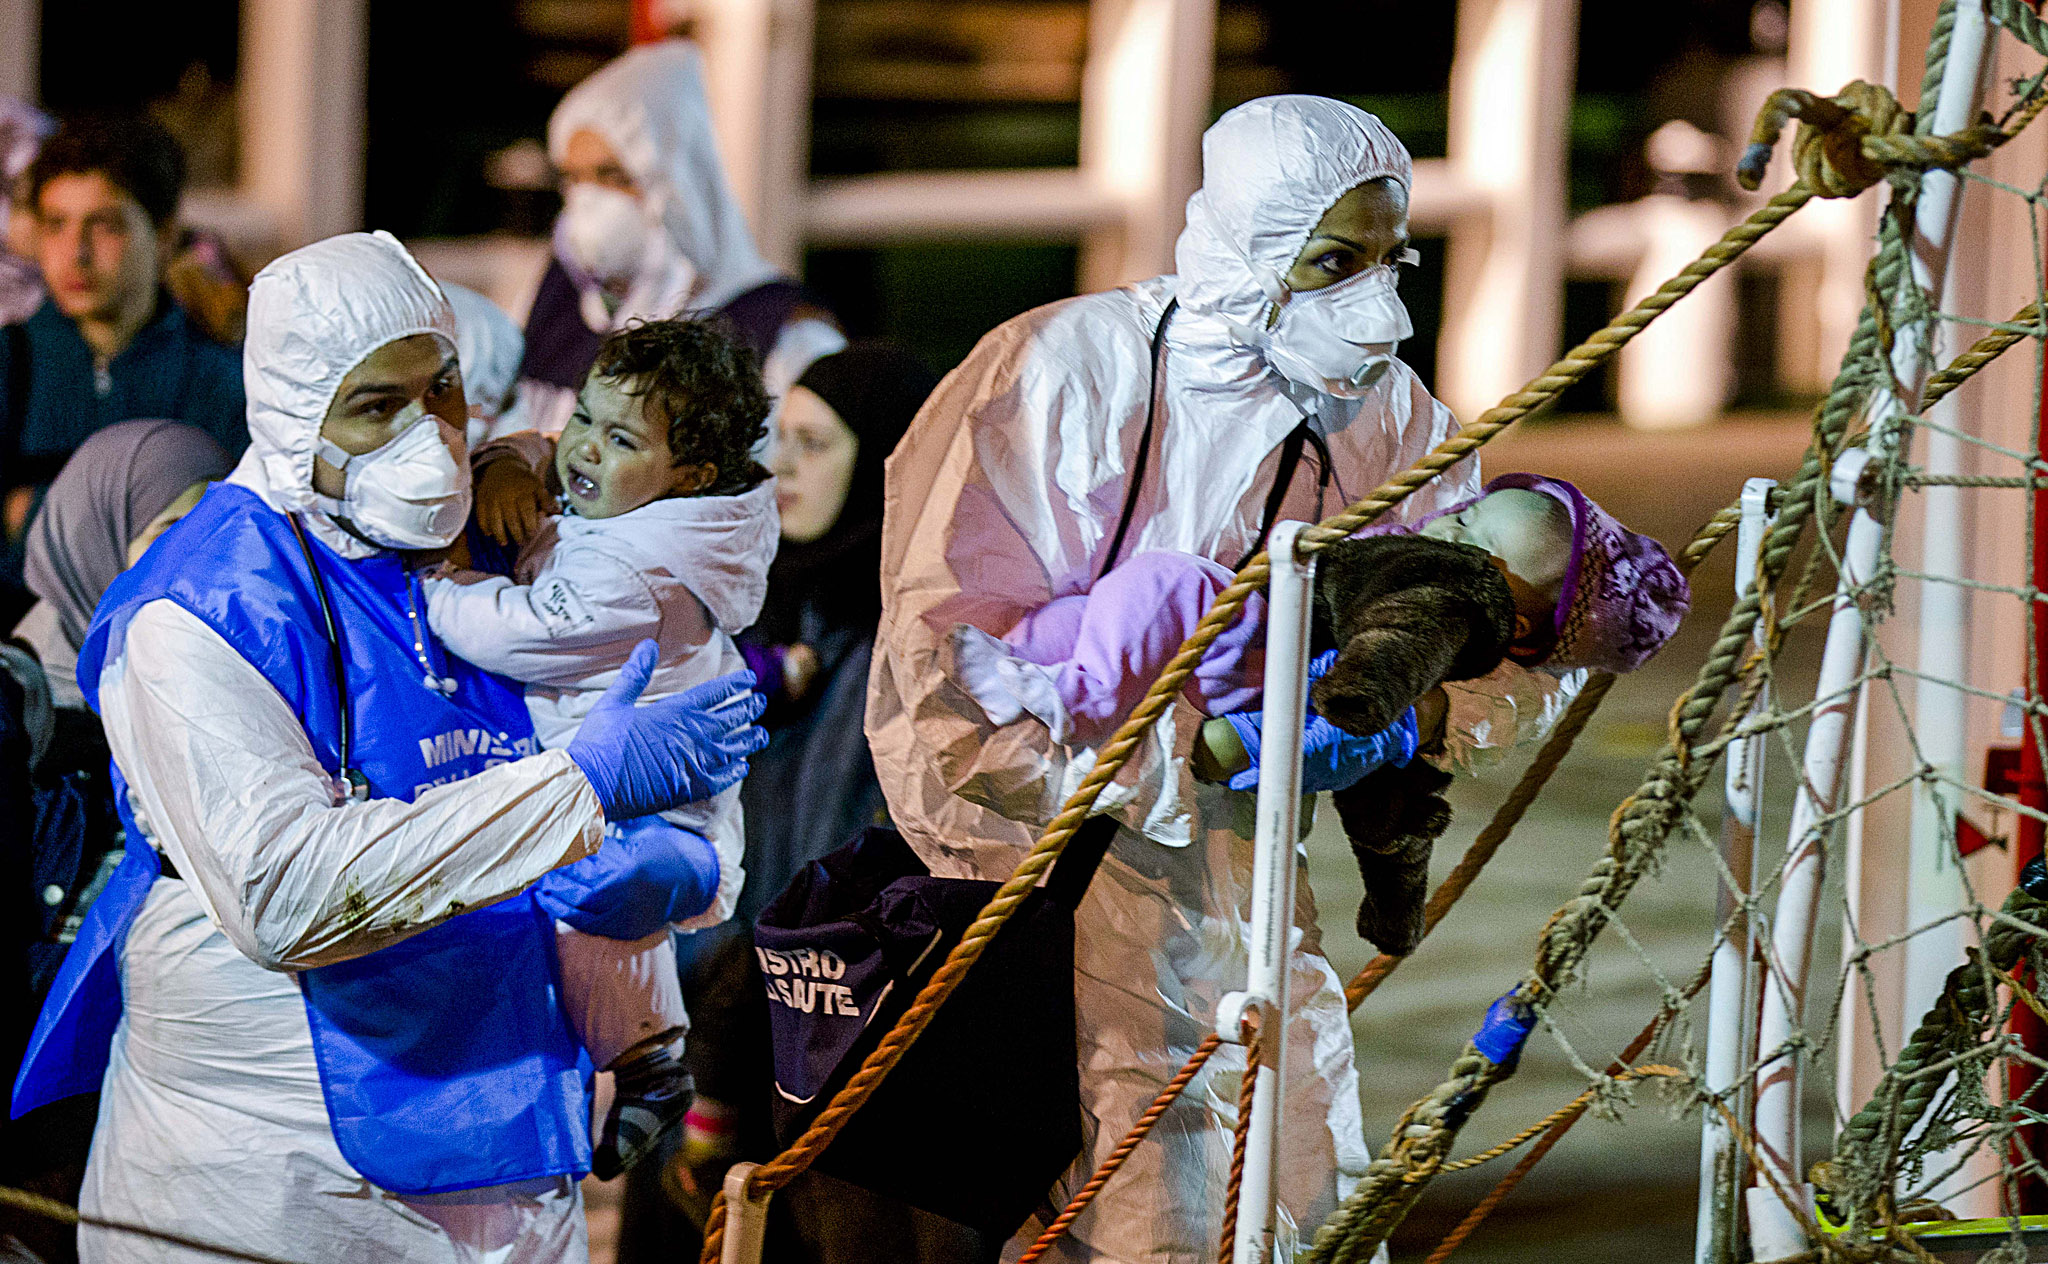 Rescuers help children to disembark in the Sicilian harbor of Pozzallo, Italy, early Monday, April 20, 2015. About 100 migrants, including 28 children, were rescued on Sunday by a merchant vessel in the Sicilian Strait while they were trying to cross. Another smuggler's boat crammed with hundreds of people overturned off Libya's coast on Saturday as rescuers approached, causing what could be the Mediterranean's deadliest known migrant tragedy and intensifying pressure on the European Union Sunday to finally meet demands for decisive action. (AP Photo/Alessandra Tarantino)